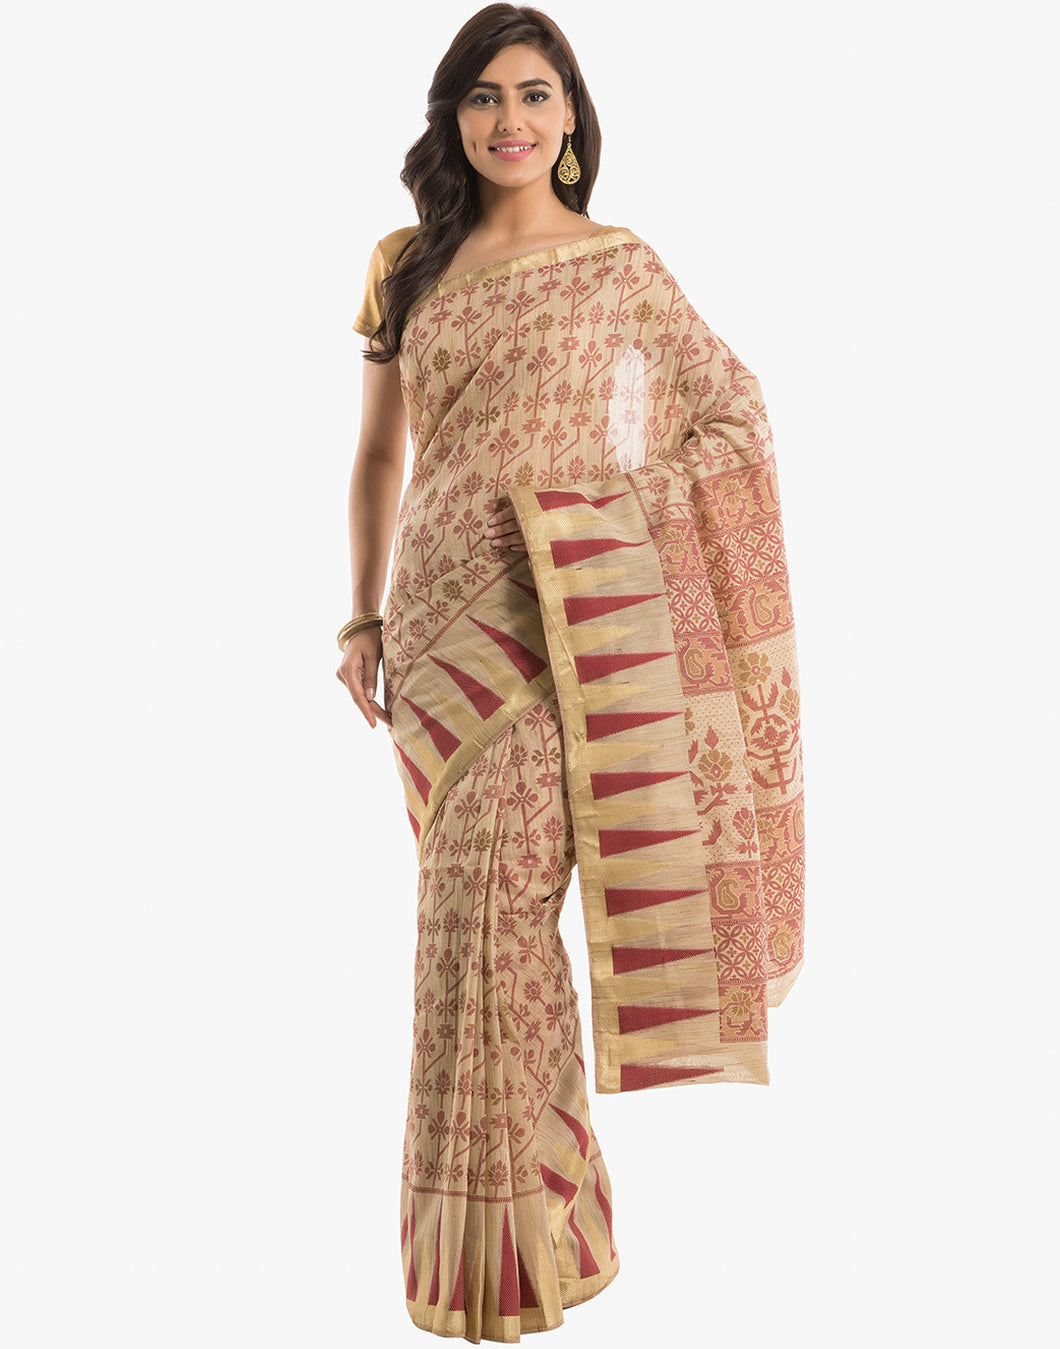 Abstract Floral Printed Cotton Saree with Temple Border By Meena Bazaar